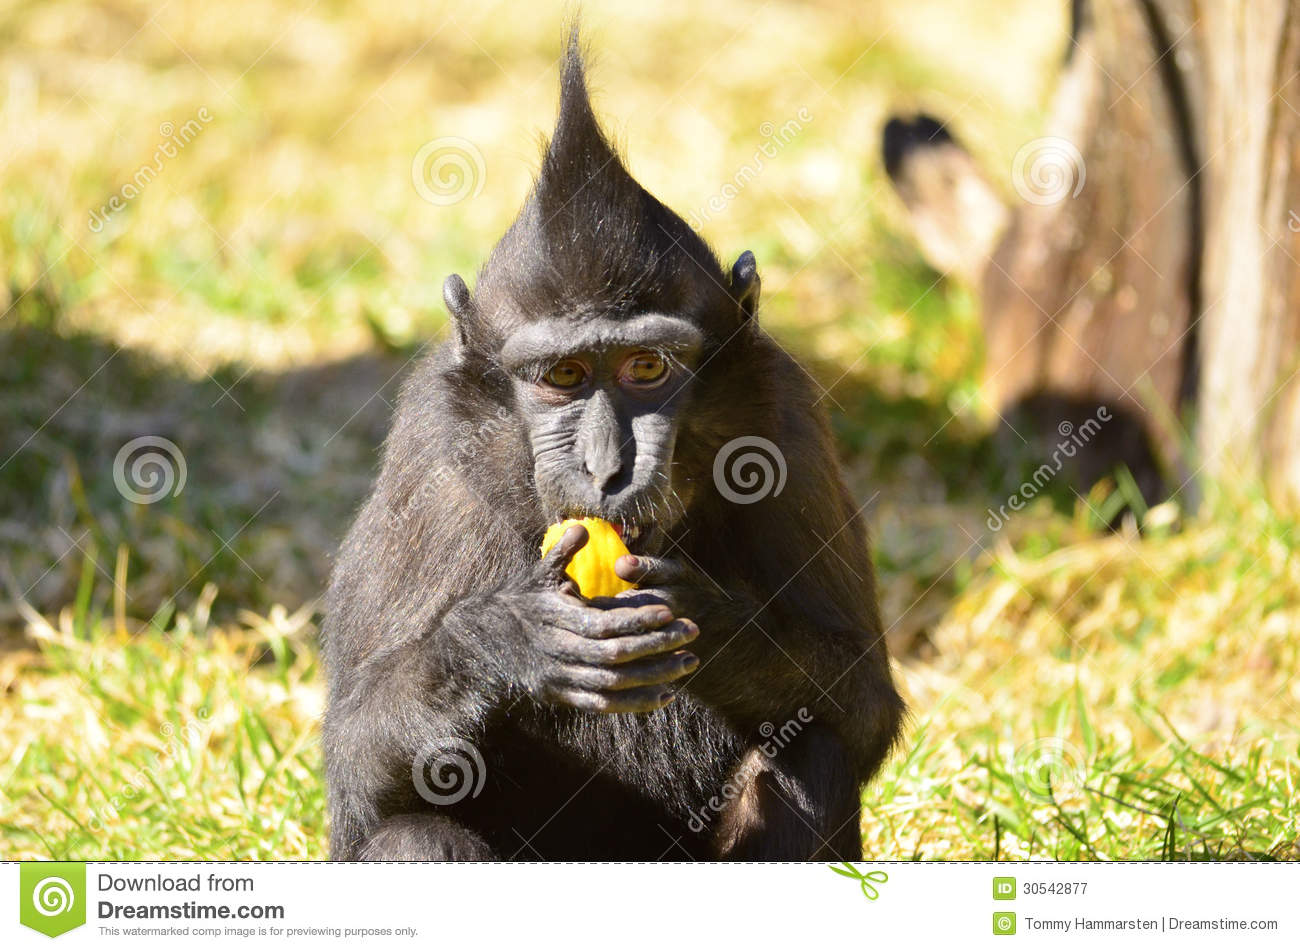 Macaca Nigra Baby Eating Fruit And Watchinglooks Funny With Mohawk